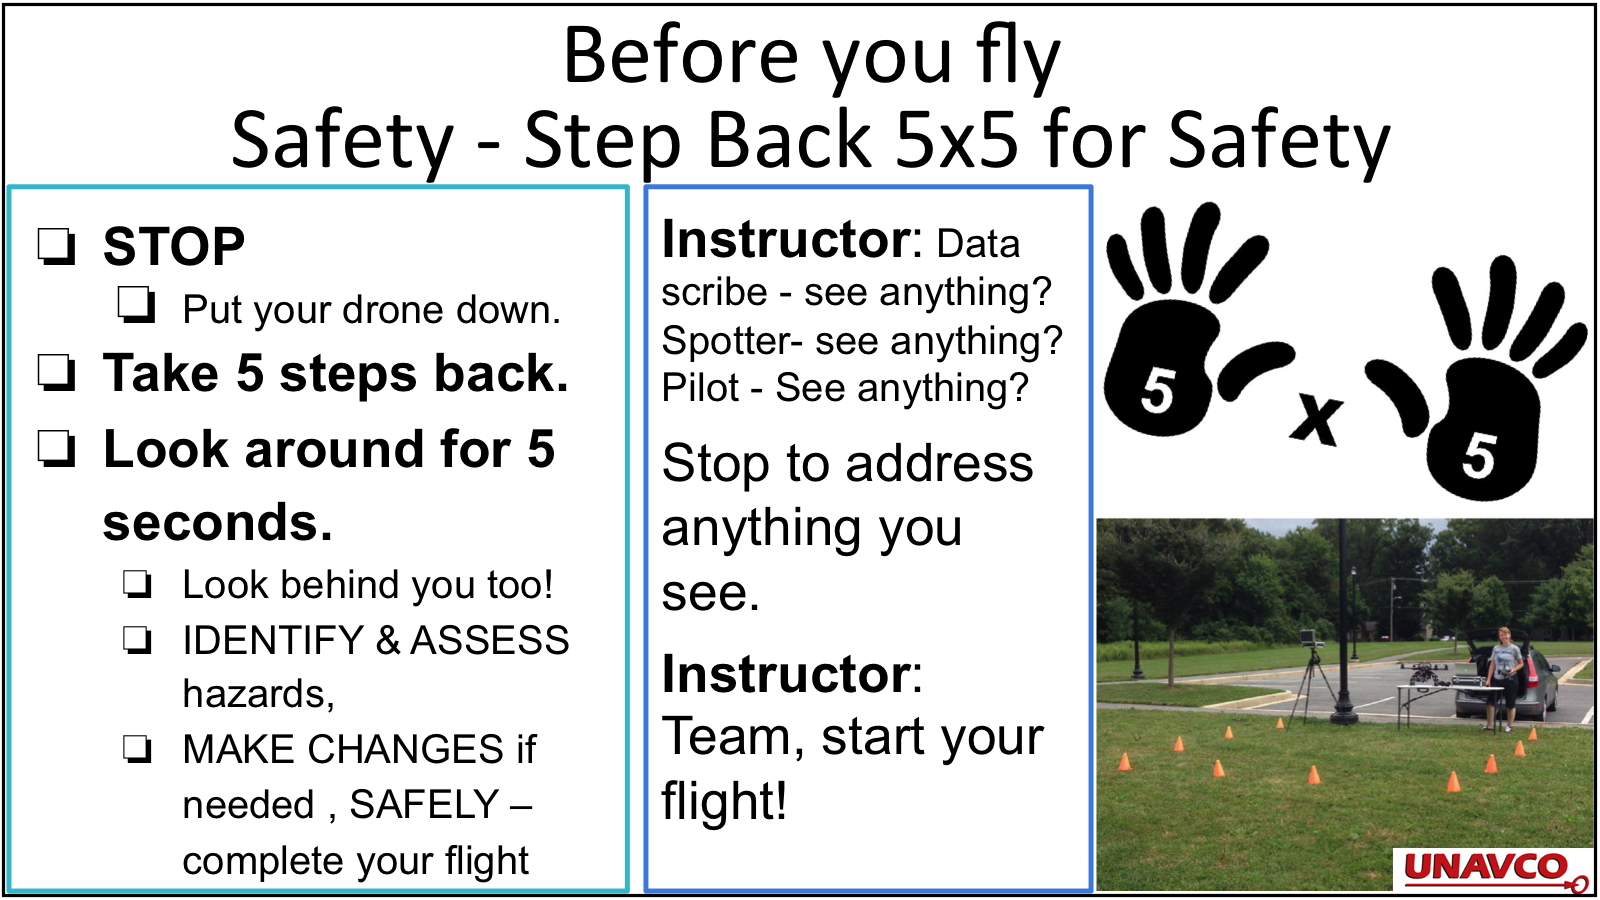 Safety before you fly